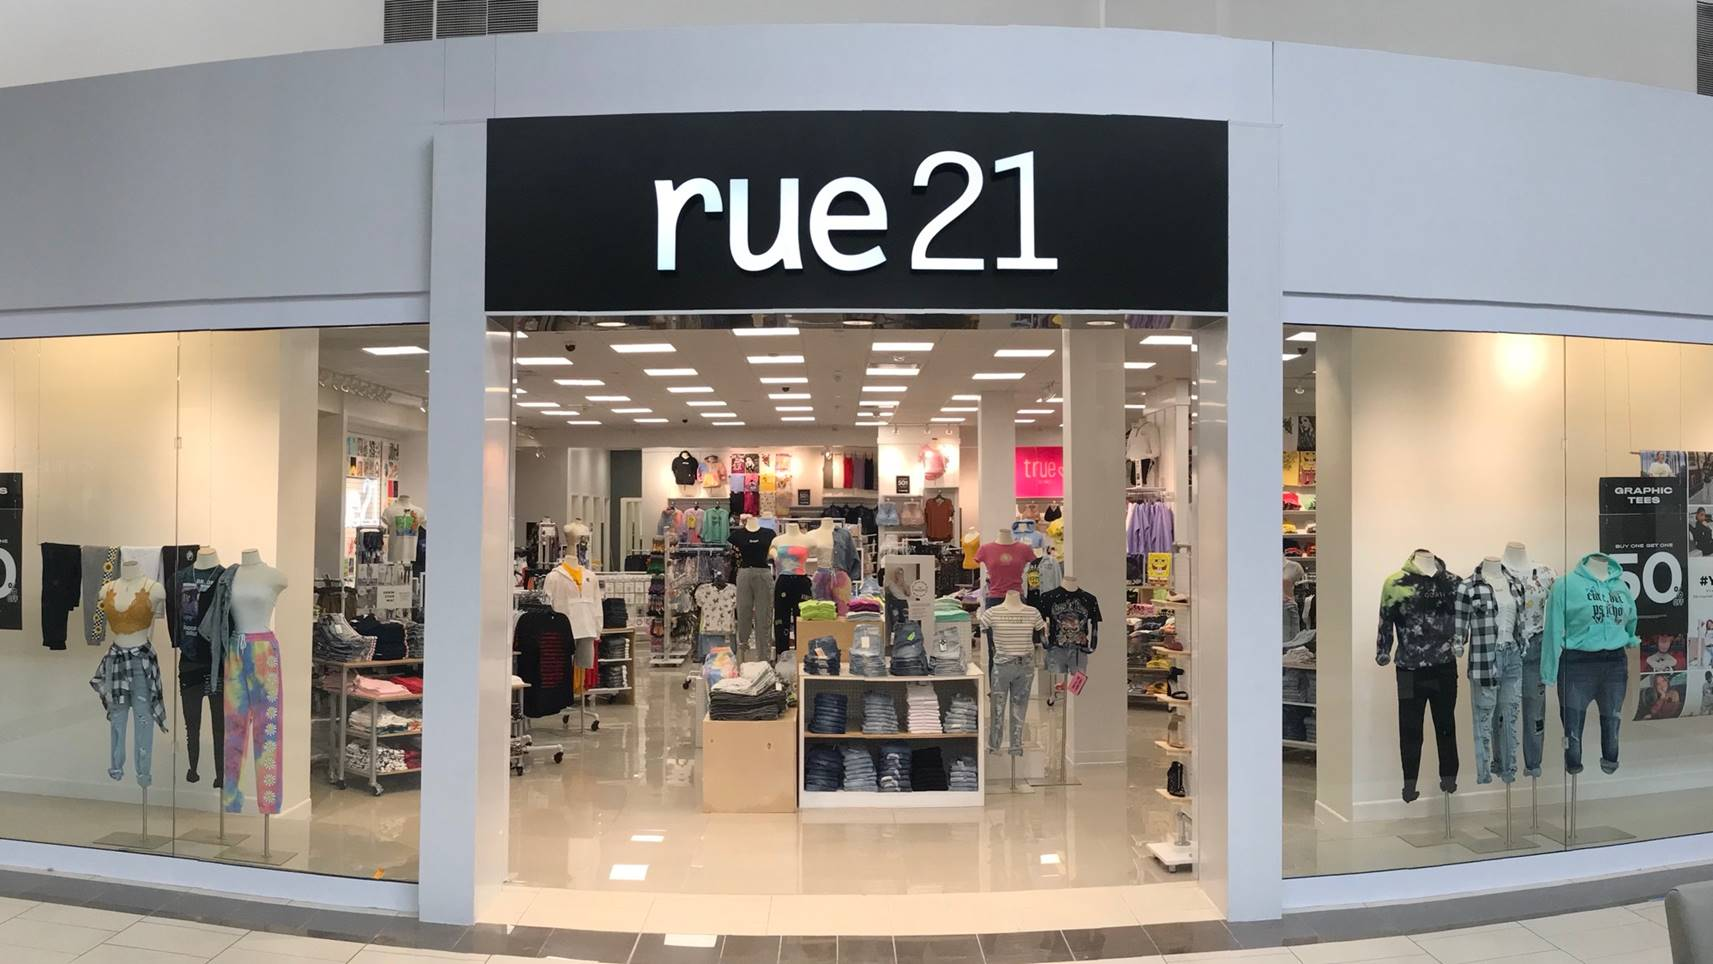 The Rue21 store in Tyler, Texas.